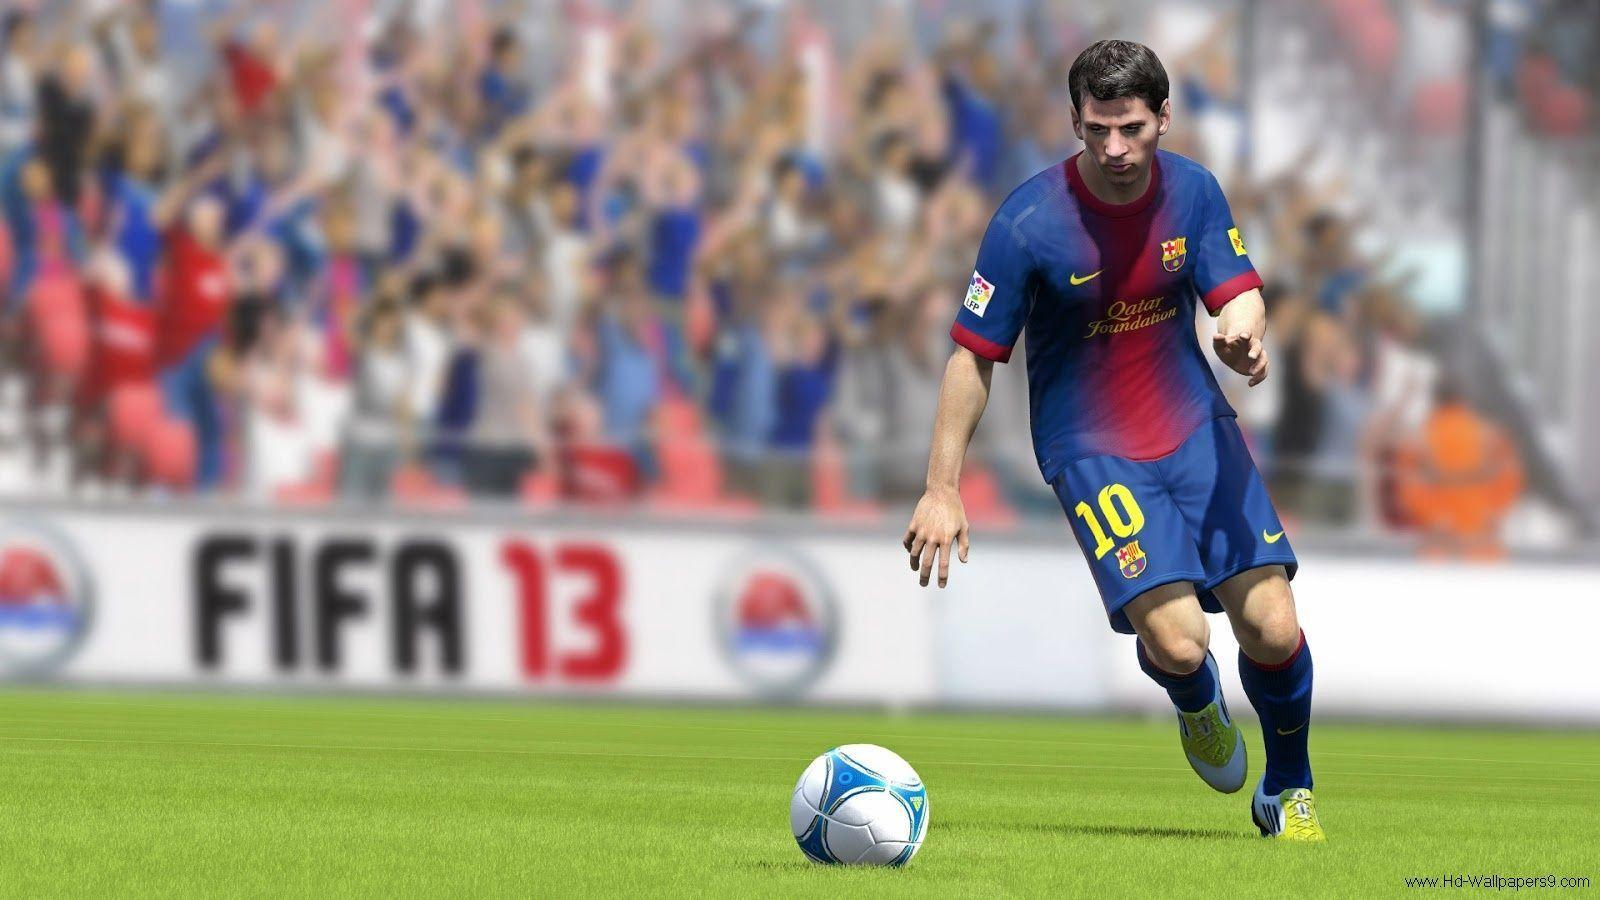 FIFA Zoom Background 2